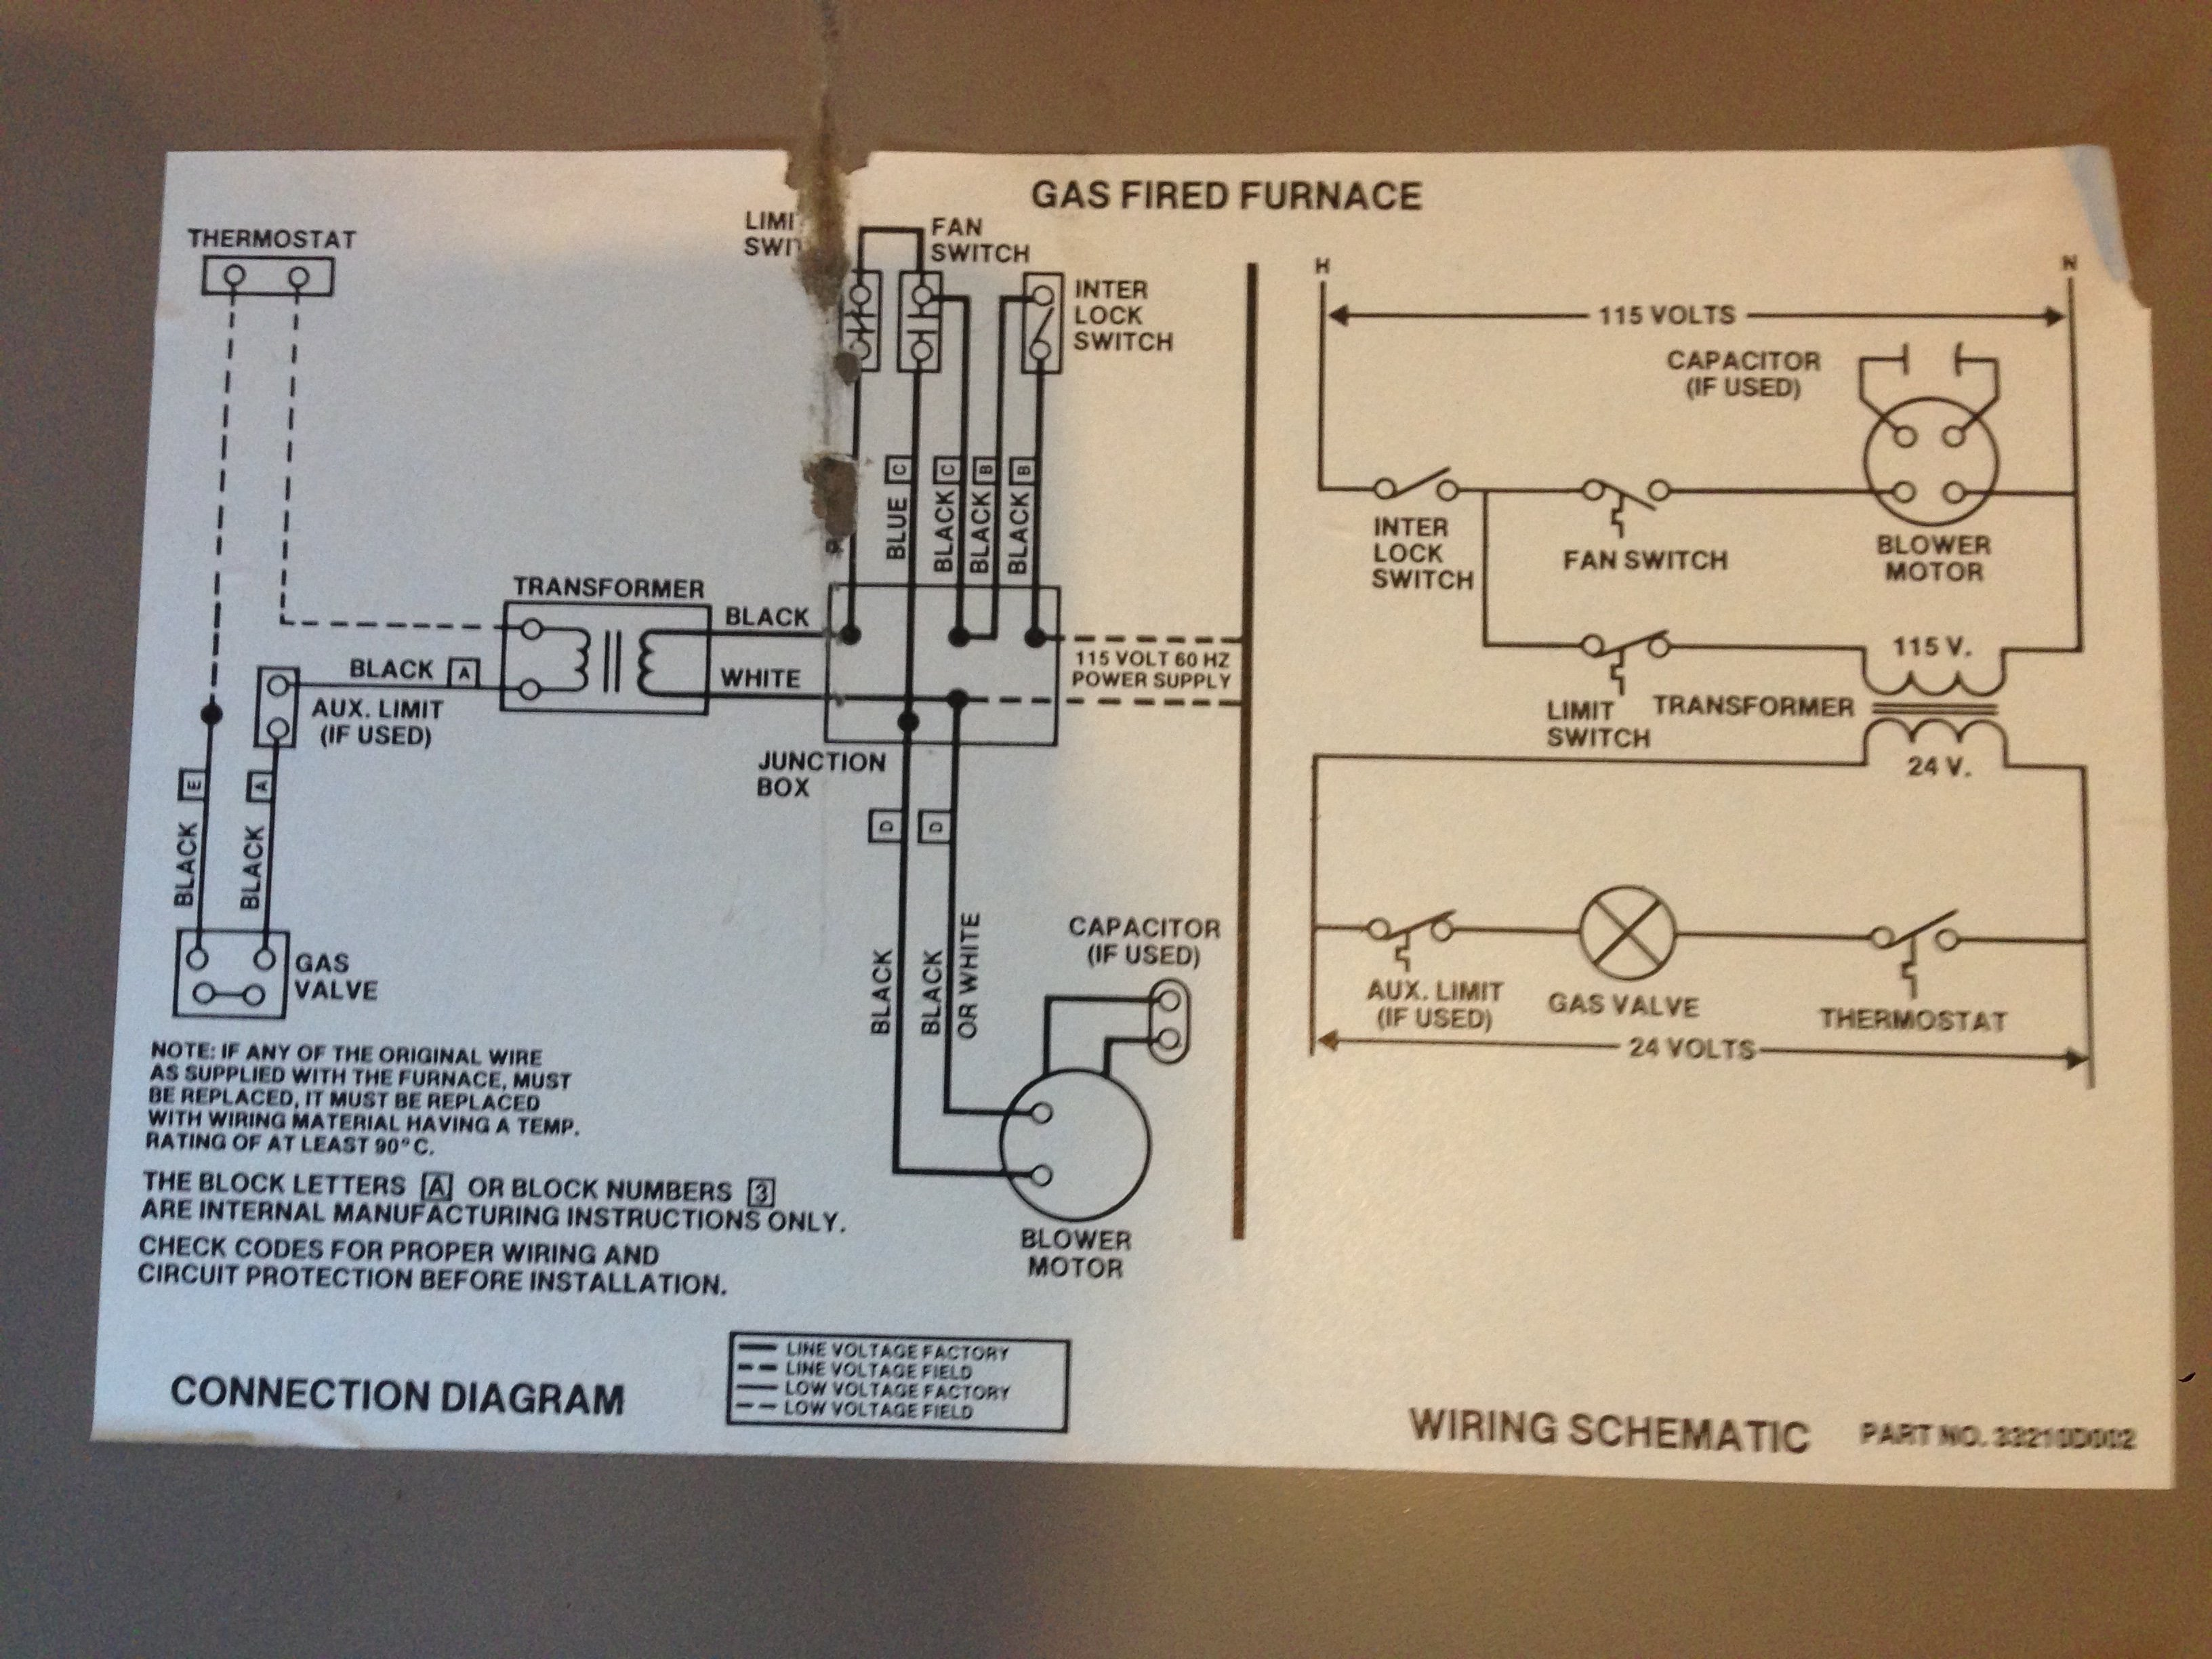 Im Looking For The Wiring Instructions A Honeywell Vr800a 1012 Wood Furnace Diagram 2014 12 16 022645 Furnac2014